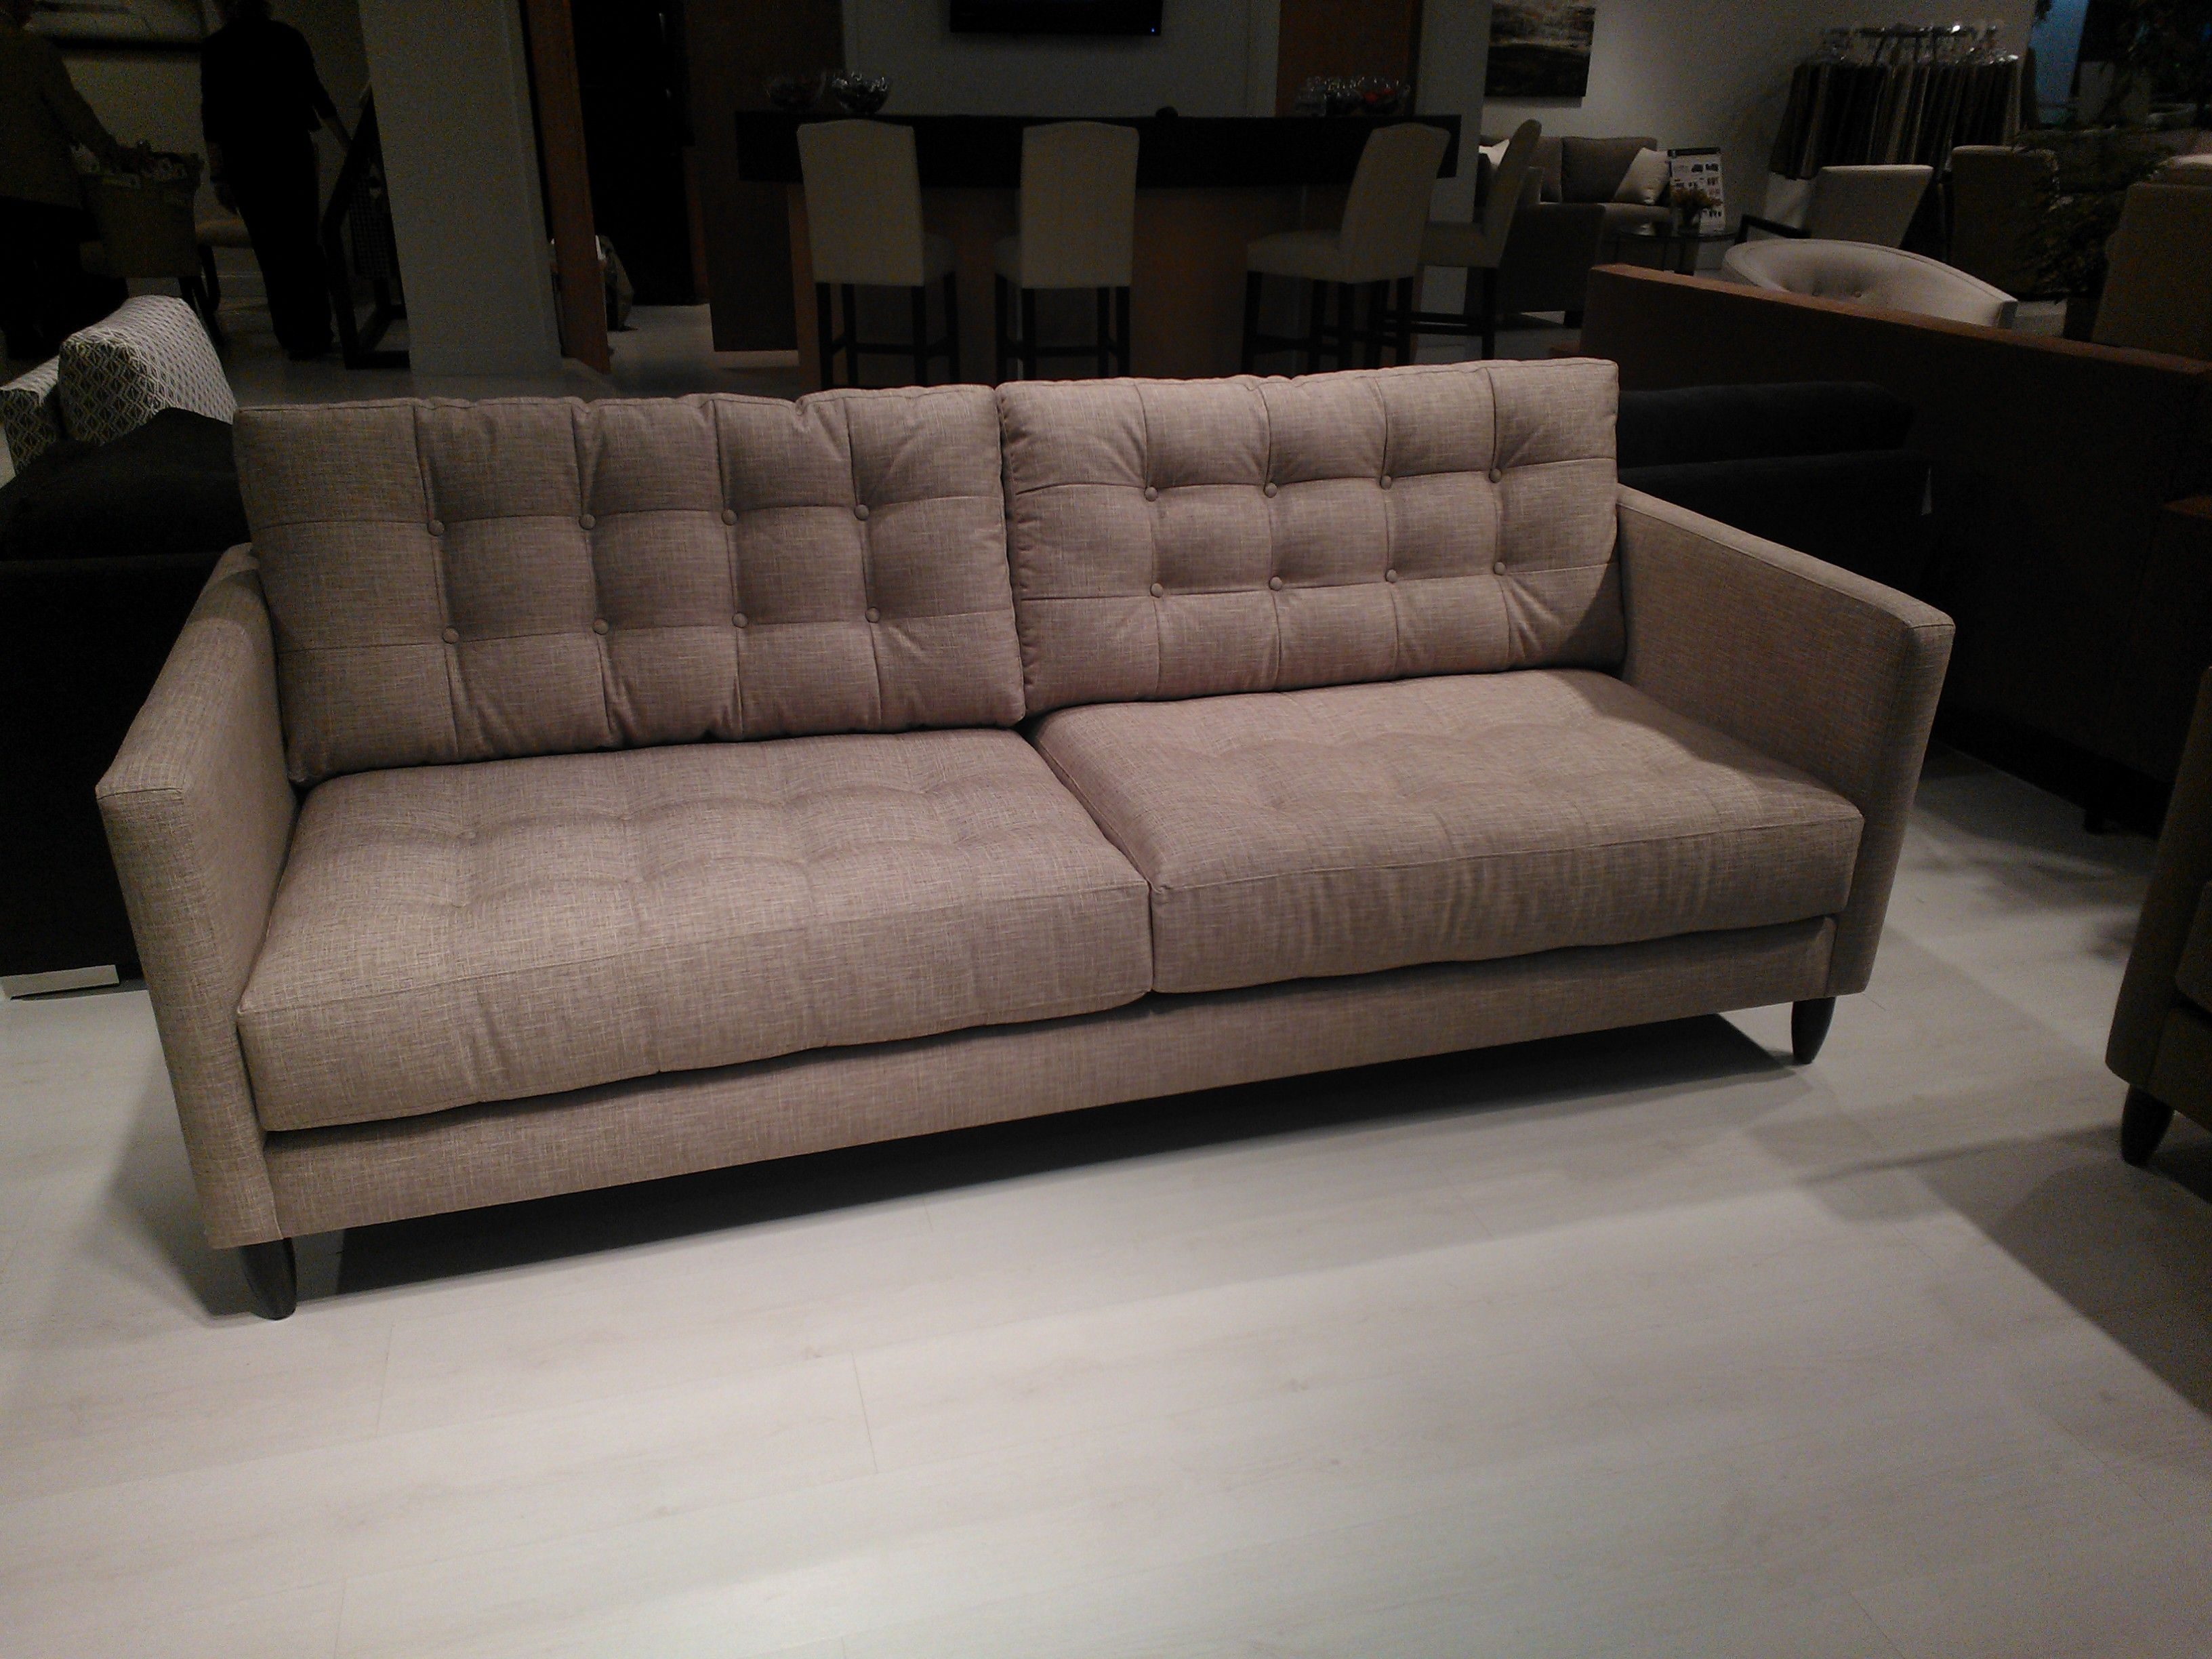 Love The Tufted Sofas At Younger Furniture Tufted Sofa Sofa Sale Furniture